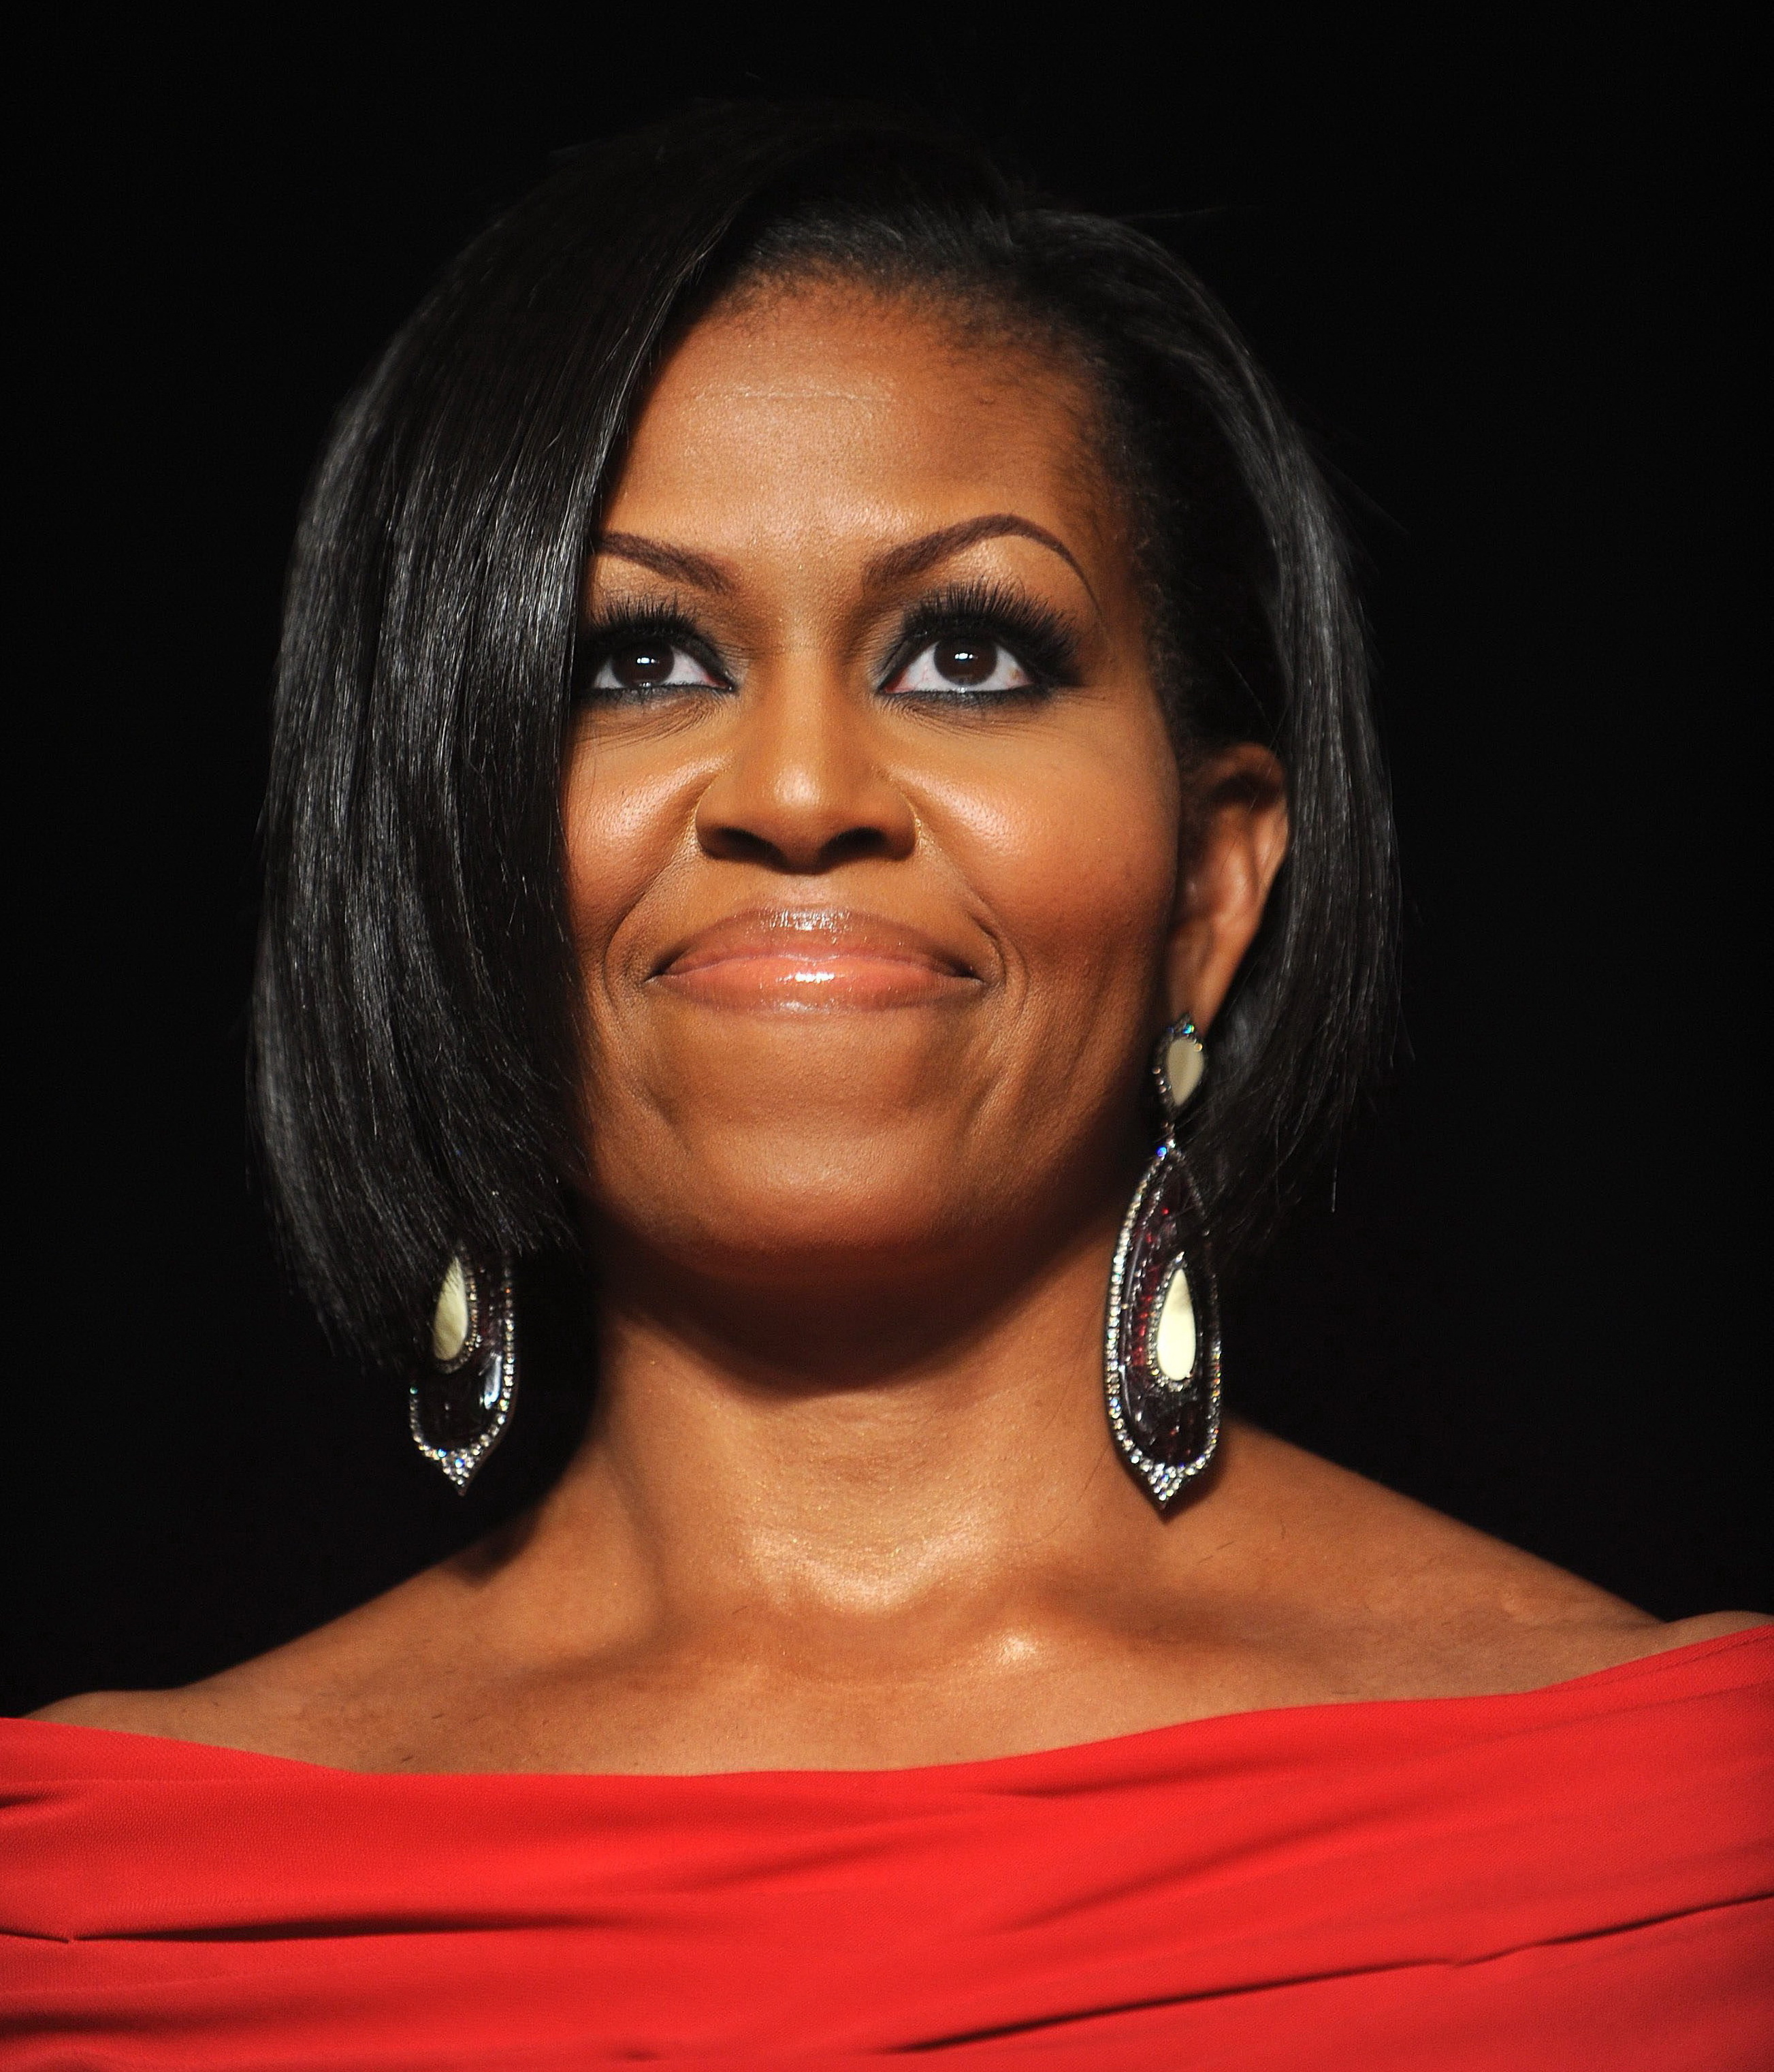 Michelle Obama - New Photos